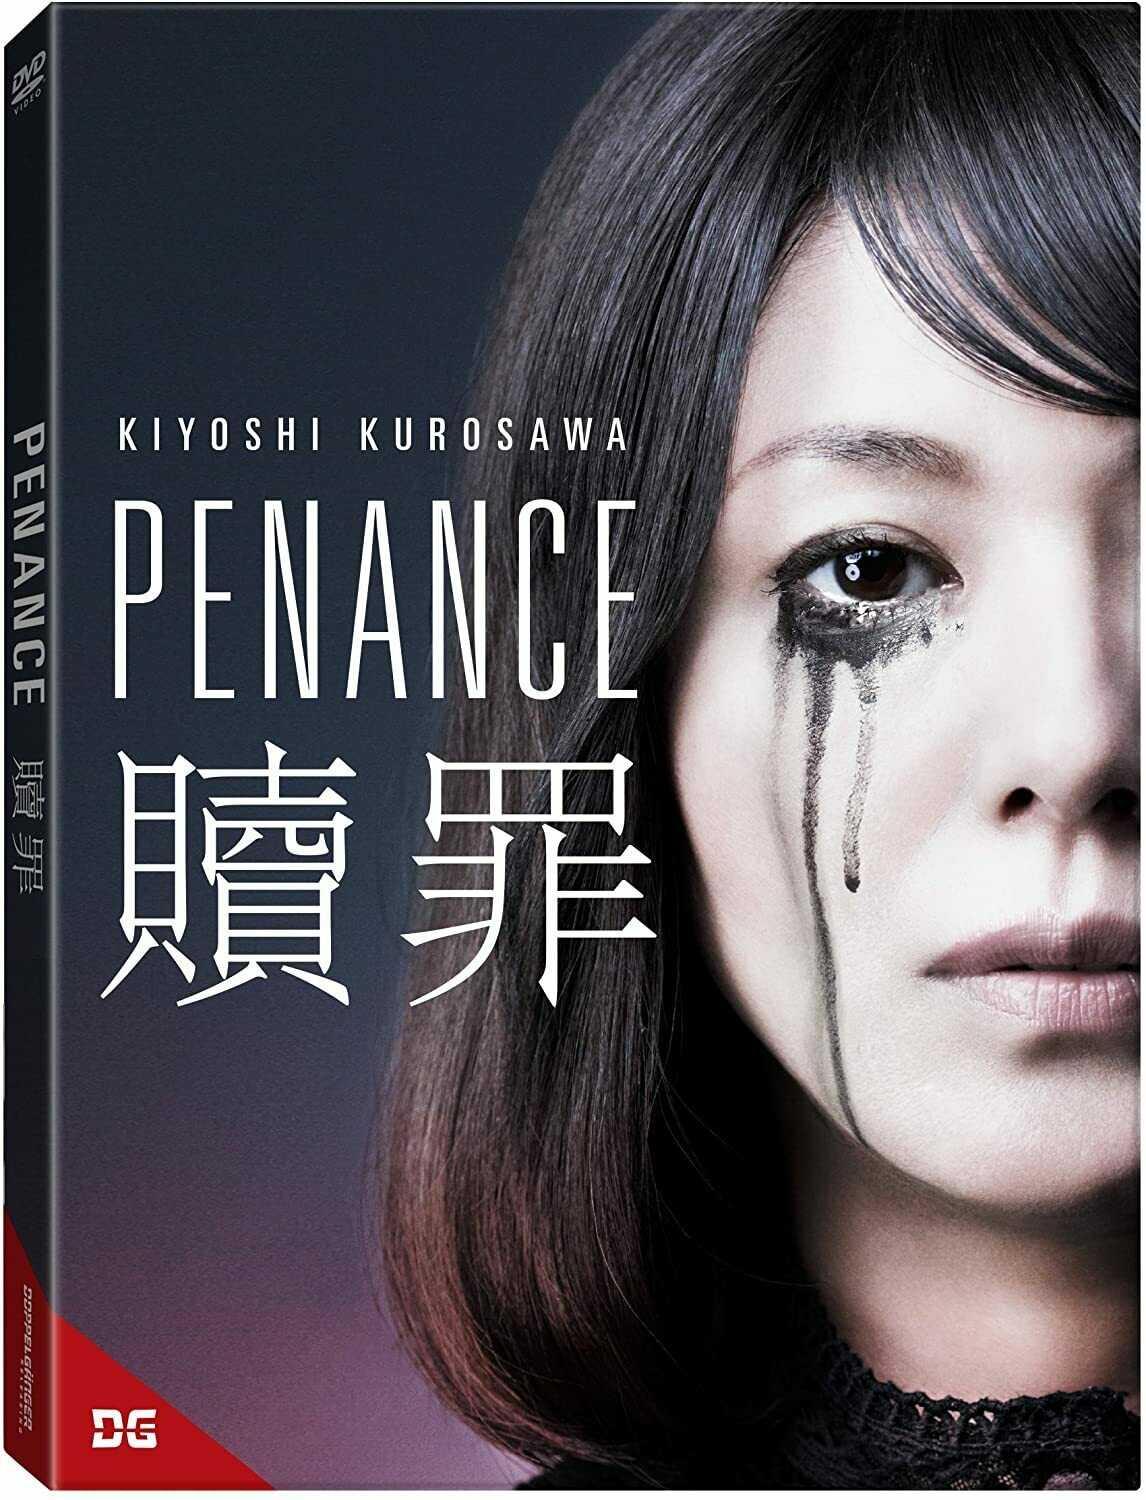 Penance 5 Part Miniseries (7 day rental)